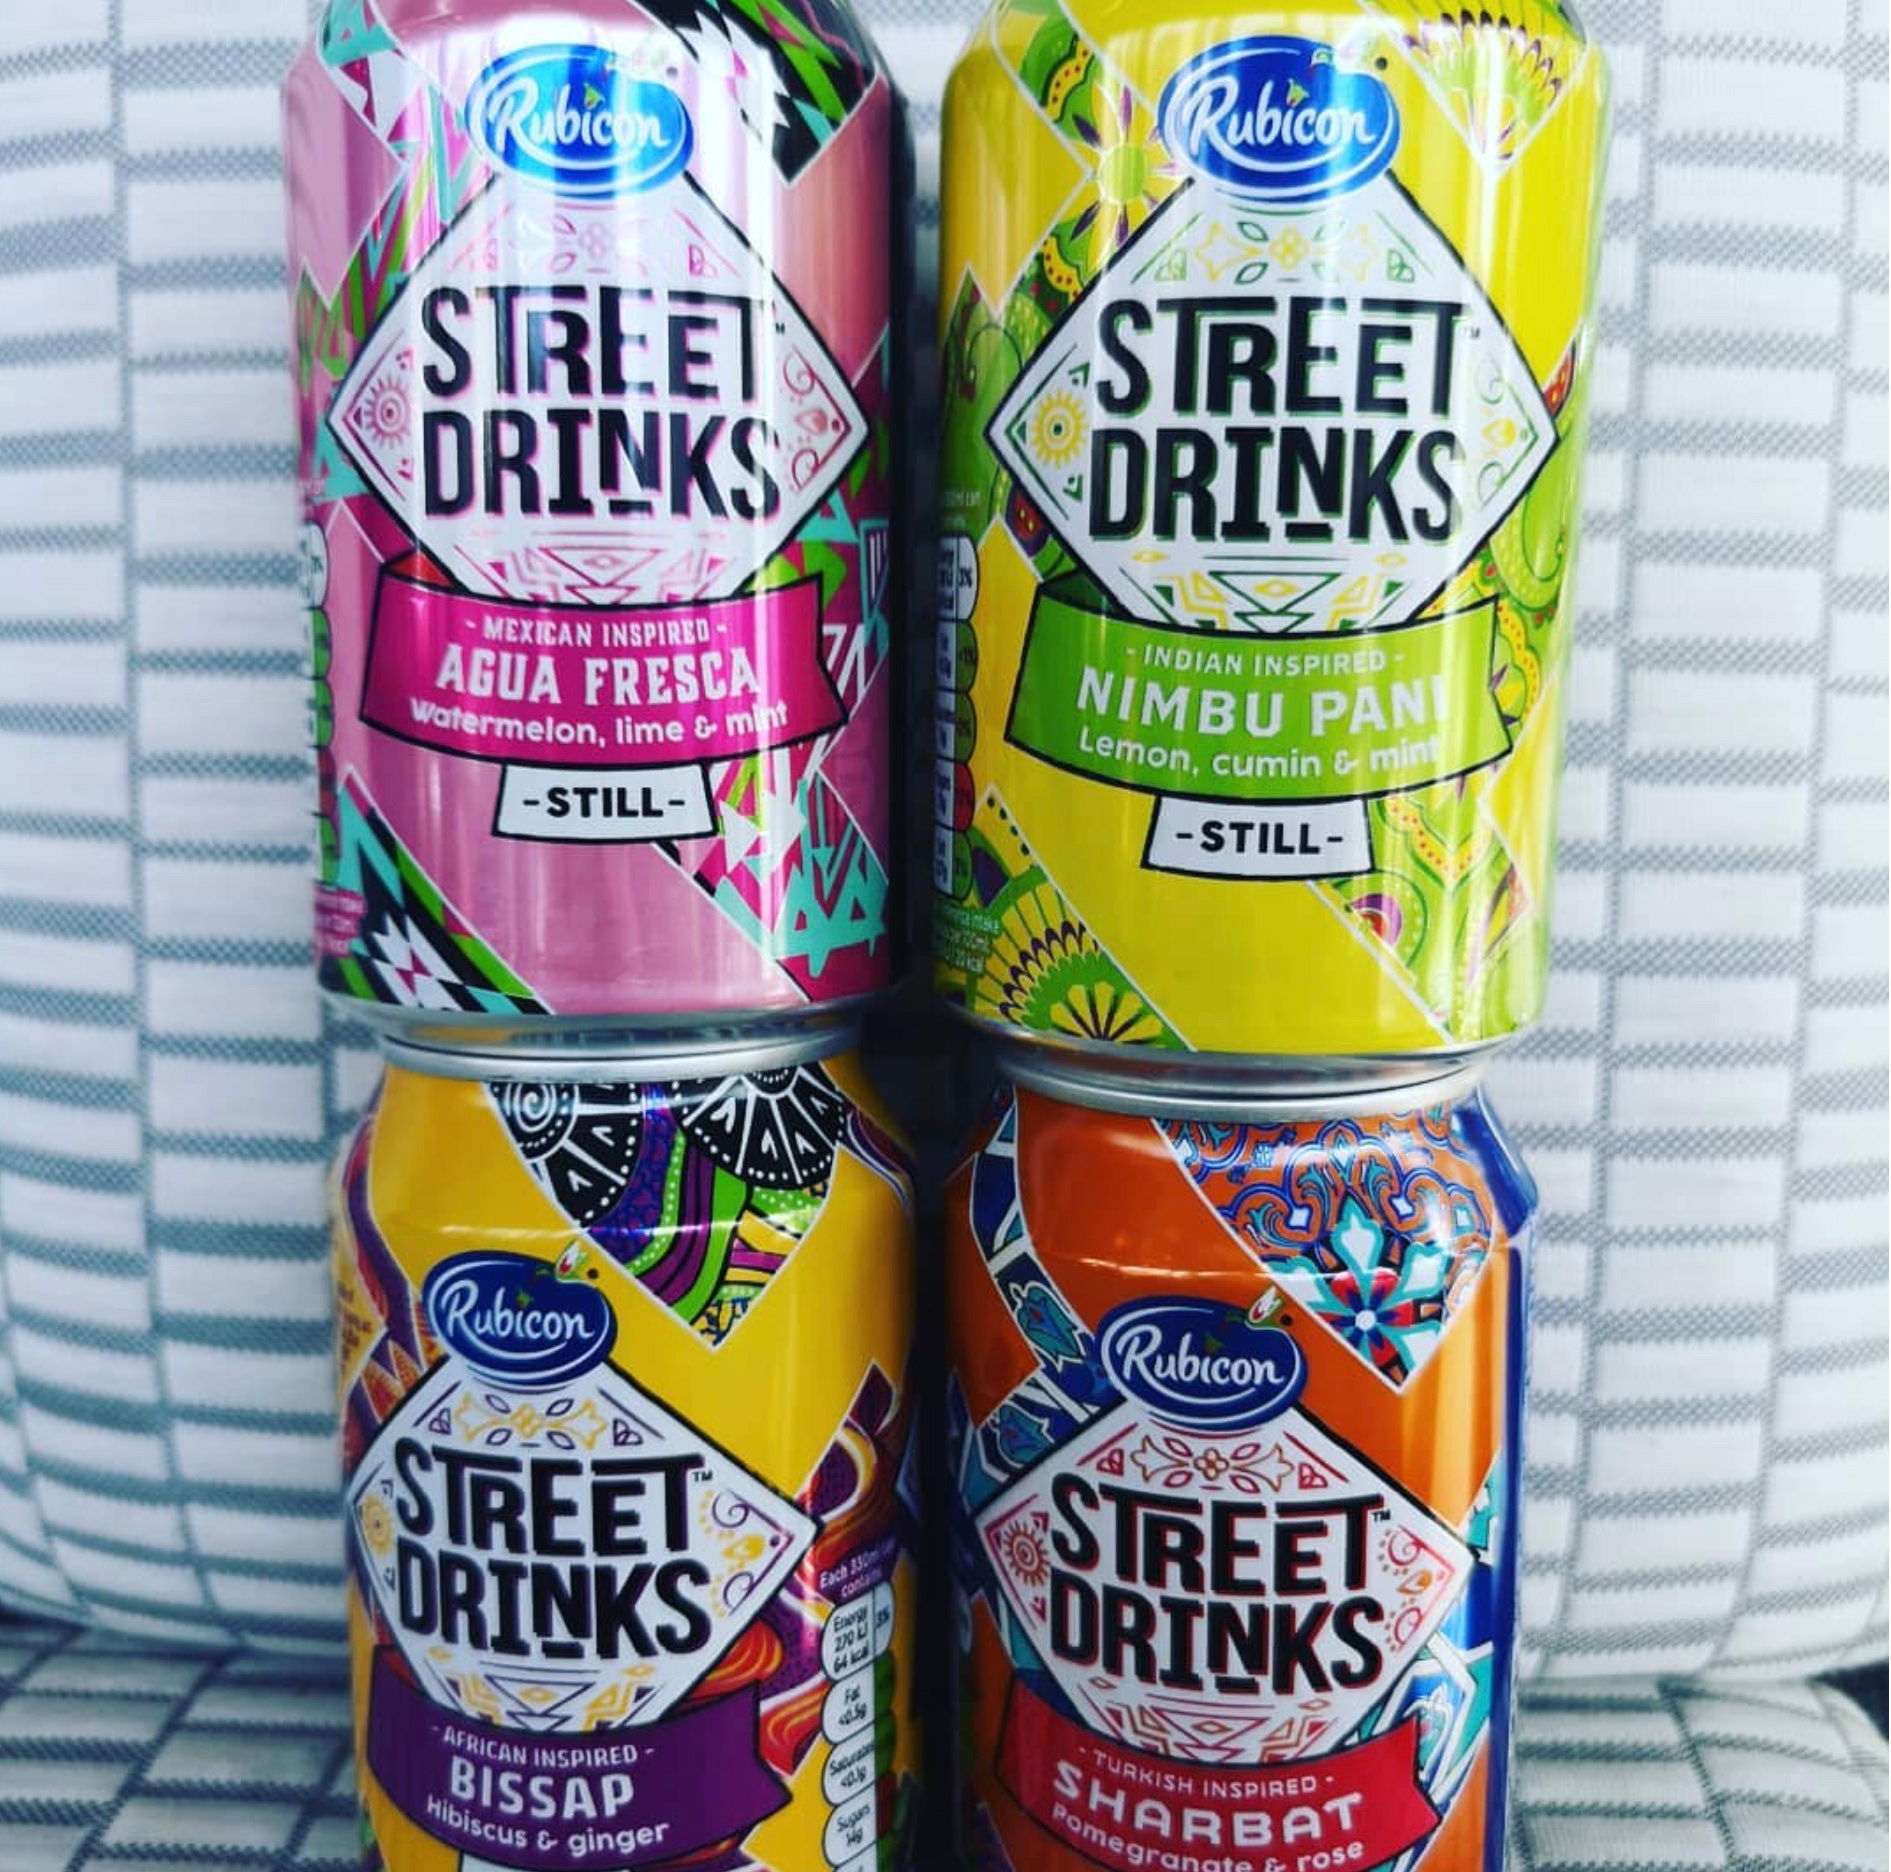 CHILLED DRINKS - We have a range of chilled soft drinks and alcoholic drinks available.